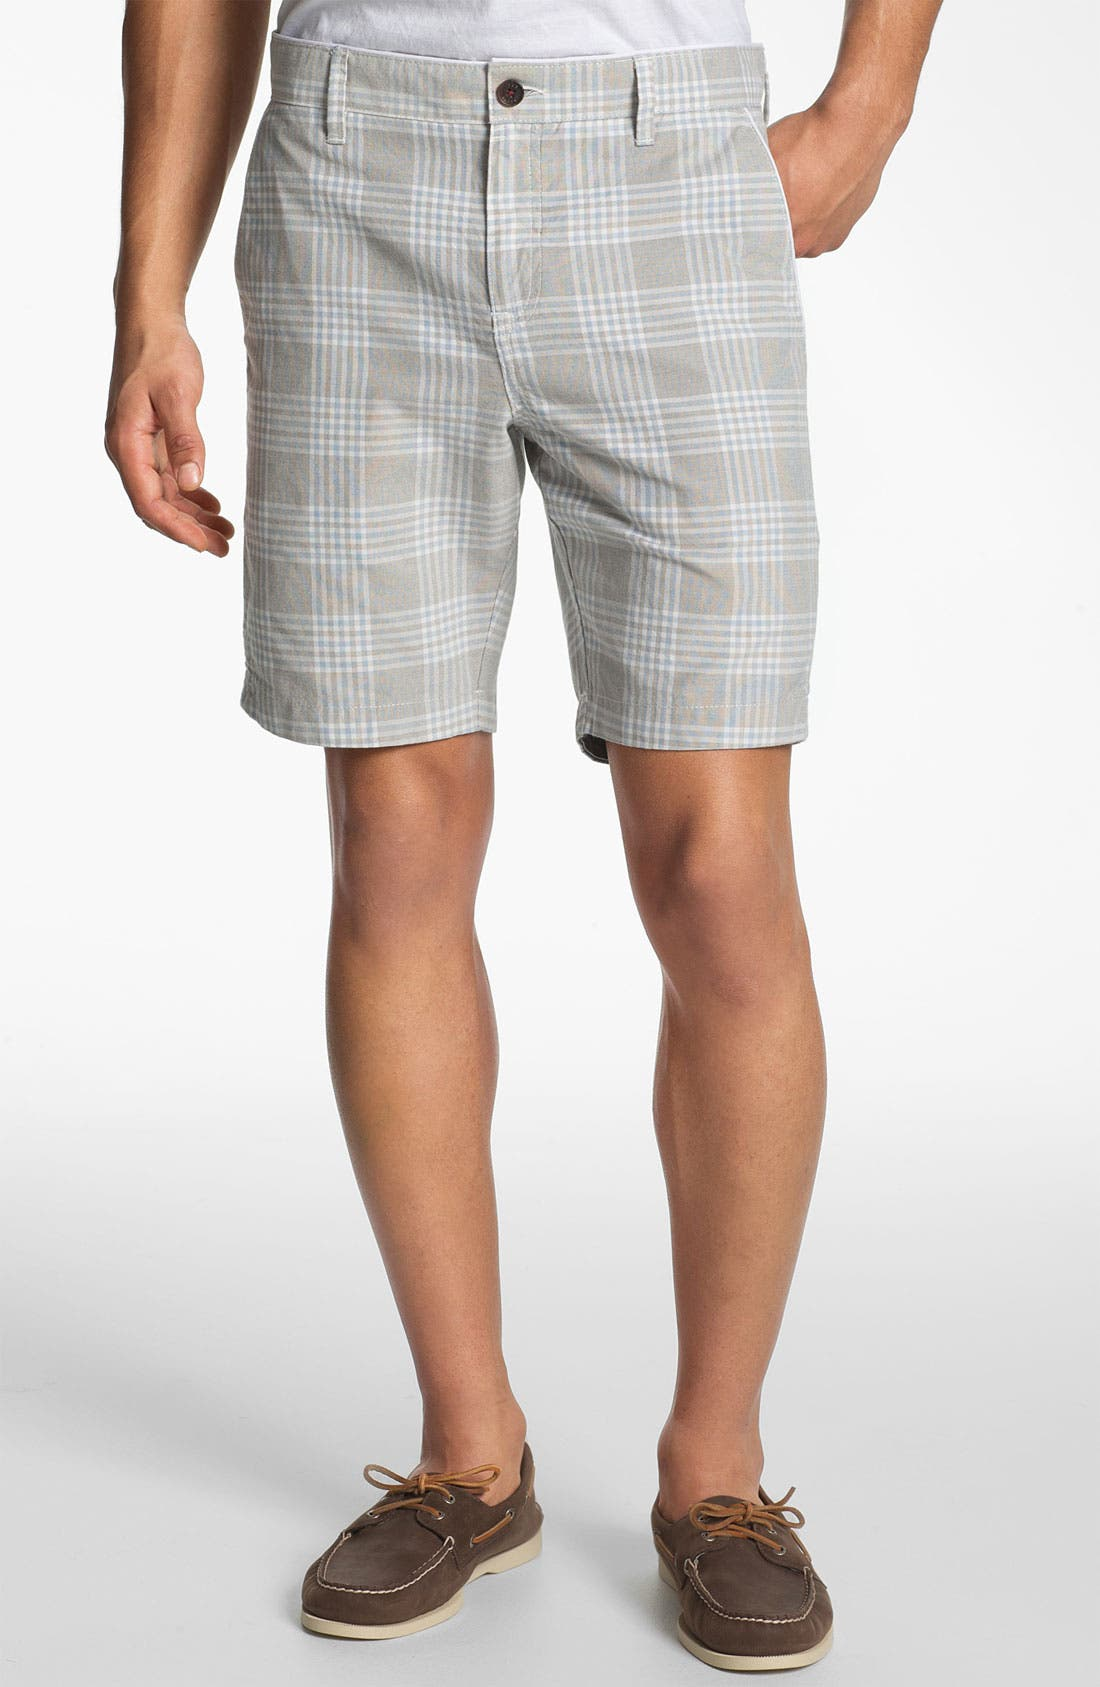 'Yaxley Check' Shorts,                             Main thumbnail 1, color,                             Blue